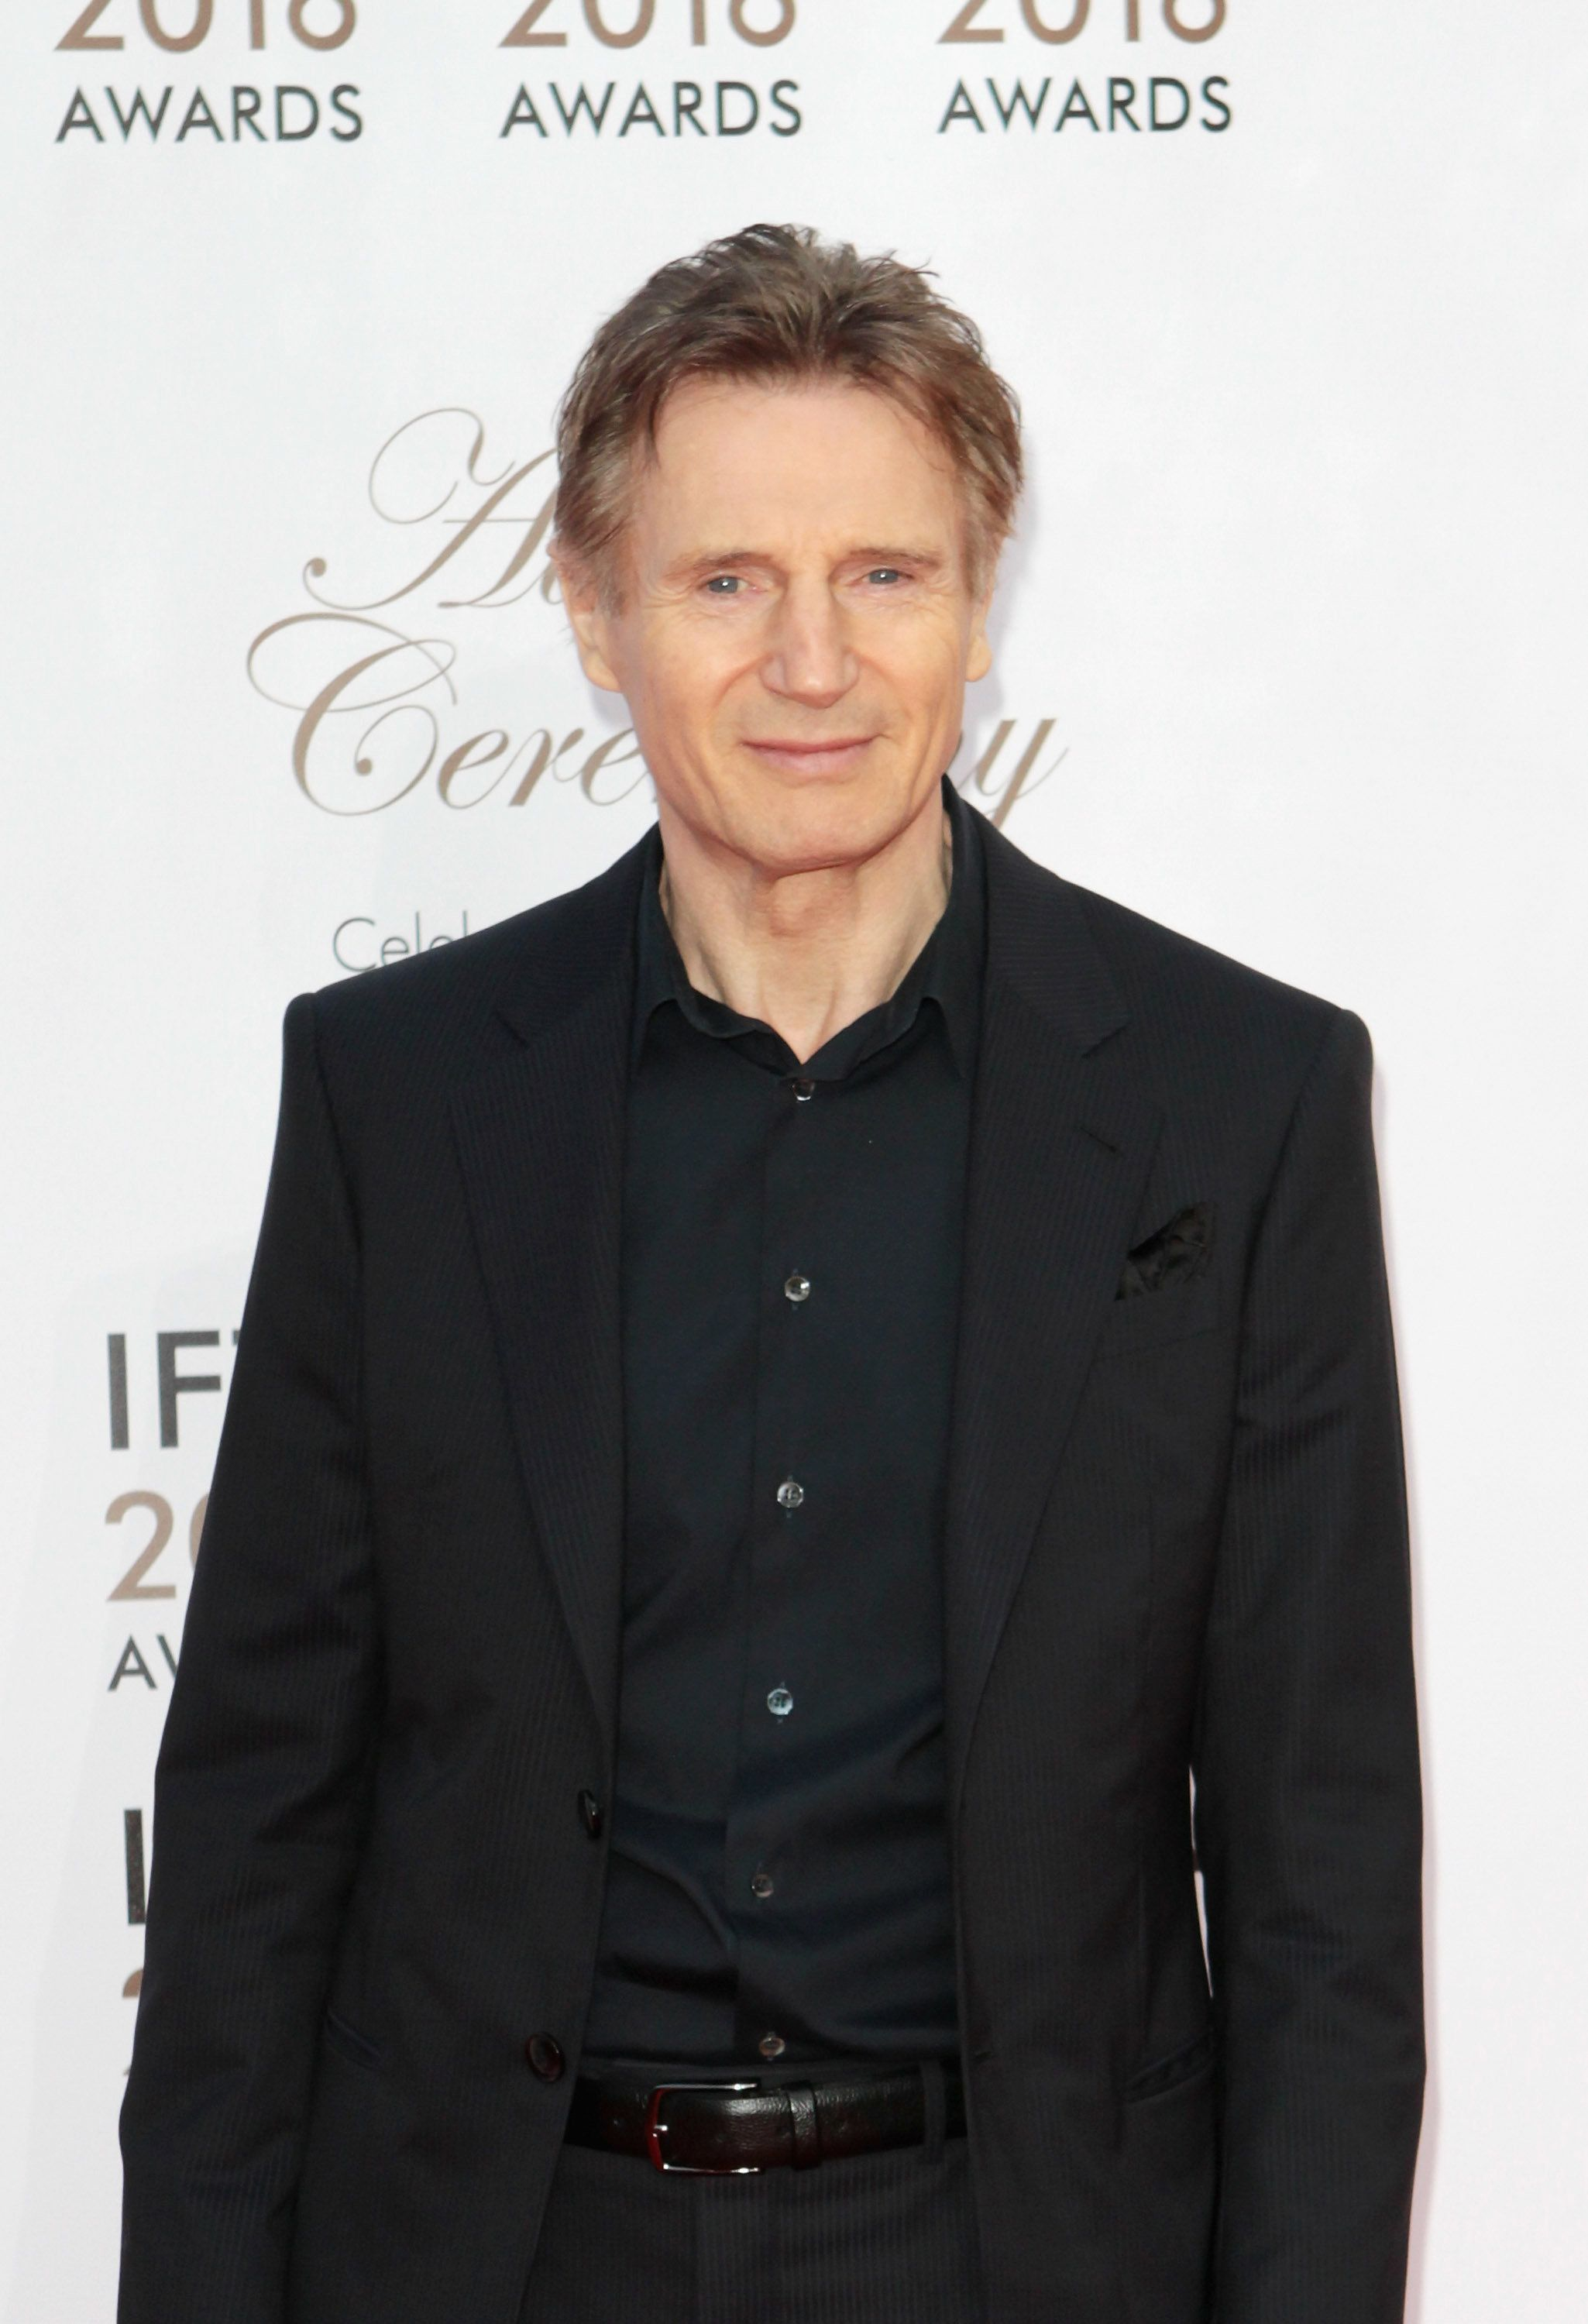 DUBLIN, IRELAND - APRIL 09: Liam Neeson attends the 2016 IFTA Film & Drama Awards at Mansion House on April 9, 2016 in Dublin, Ireland.  (Photo by Phillip Massey/Getty Images)